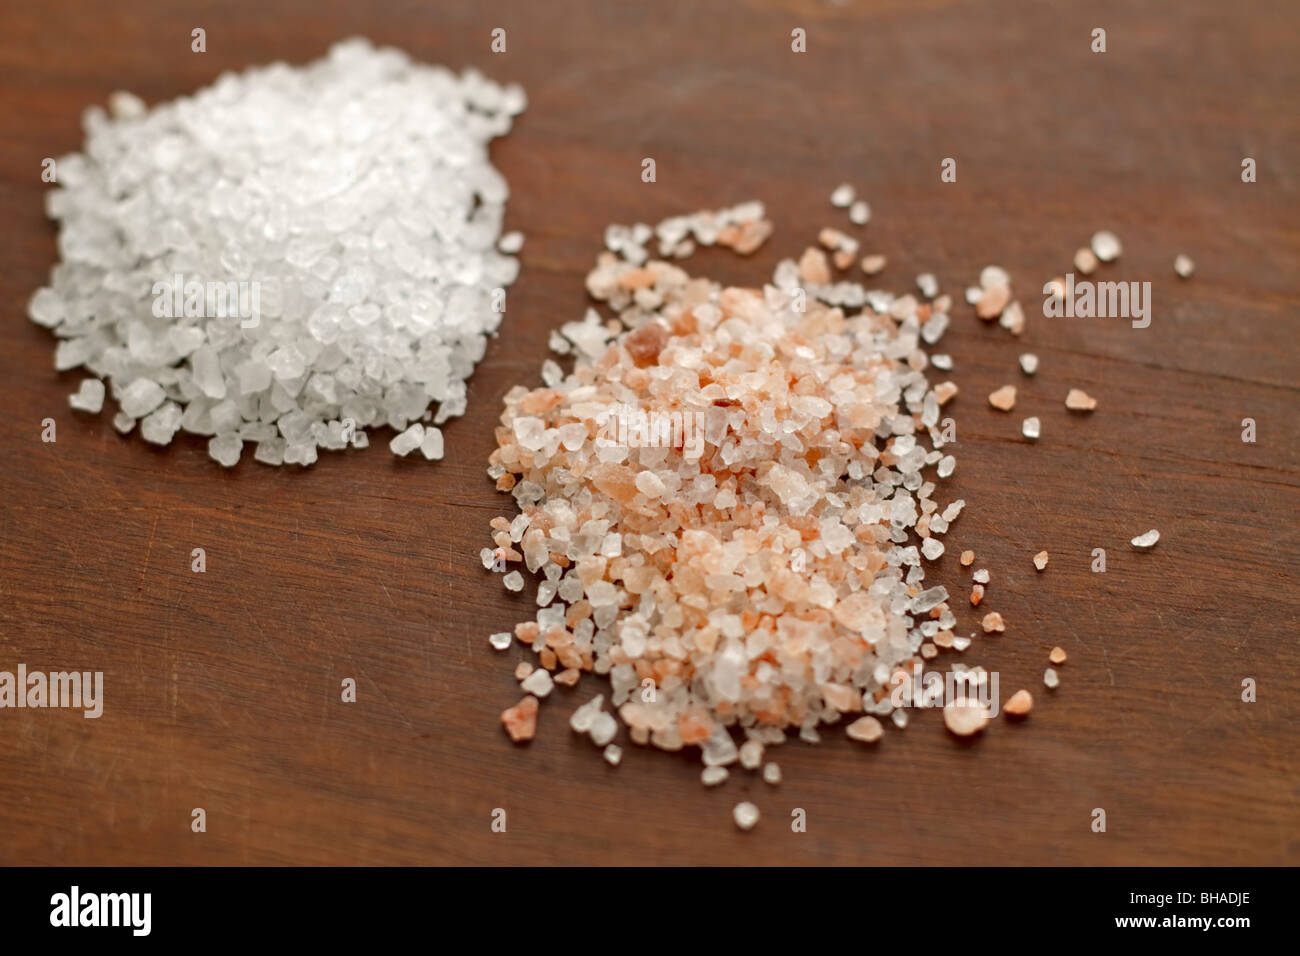 Pink Himalayan rock salt and plain rock salt - Stock Image